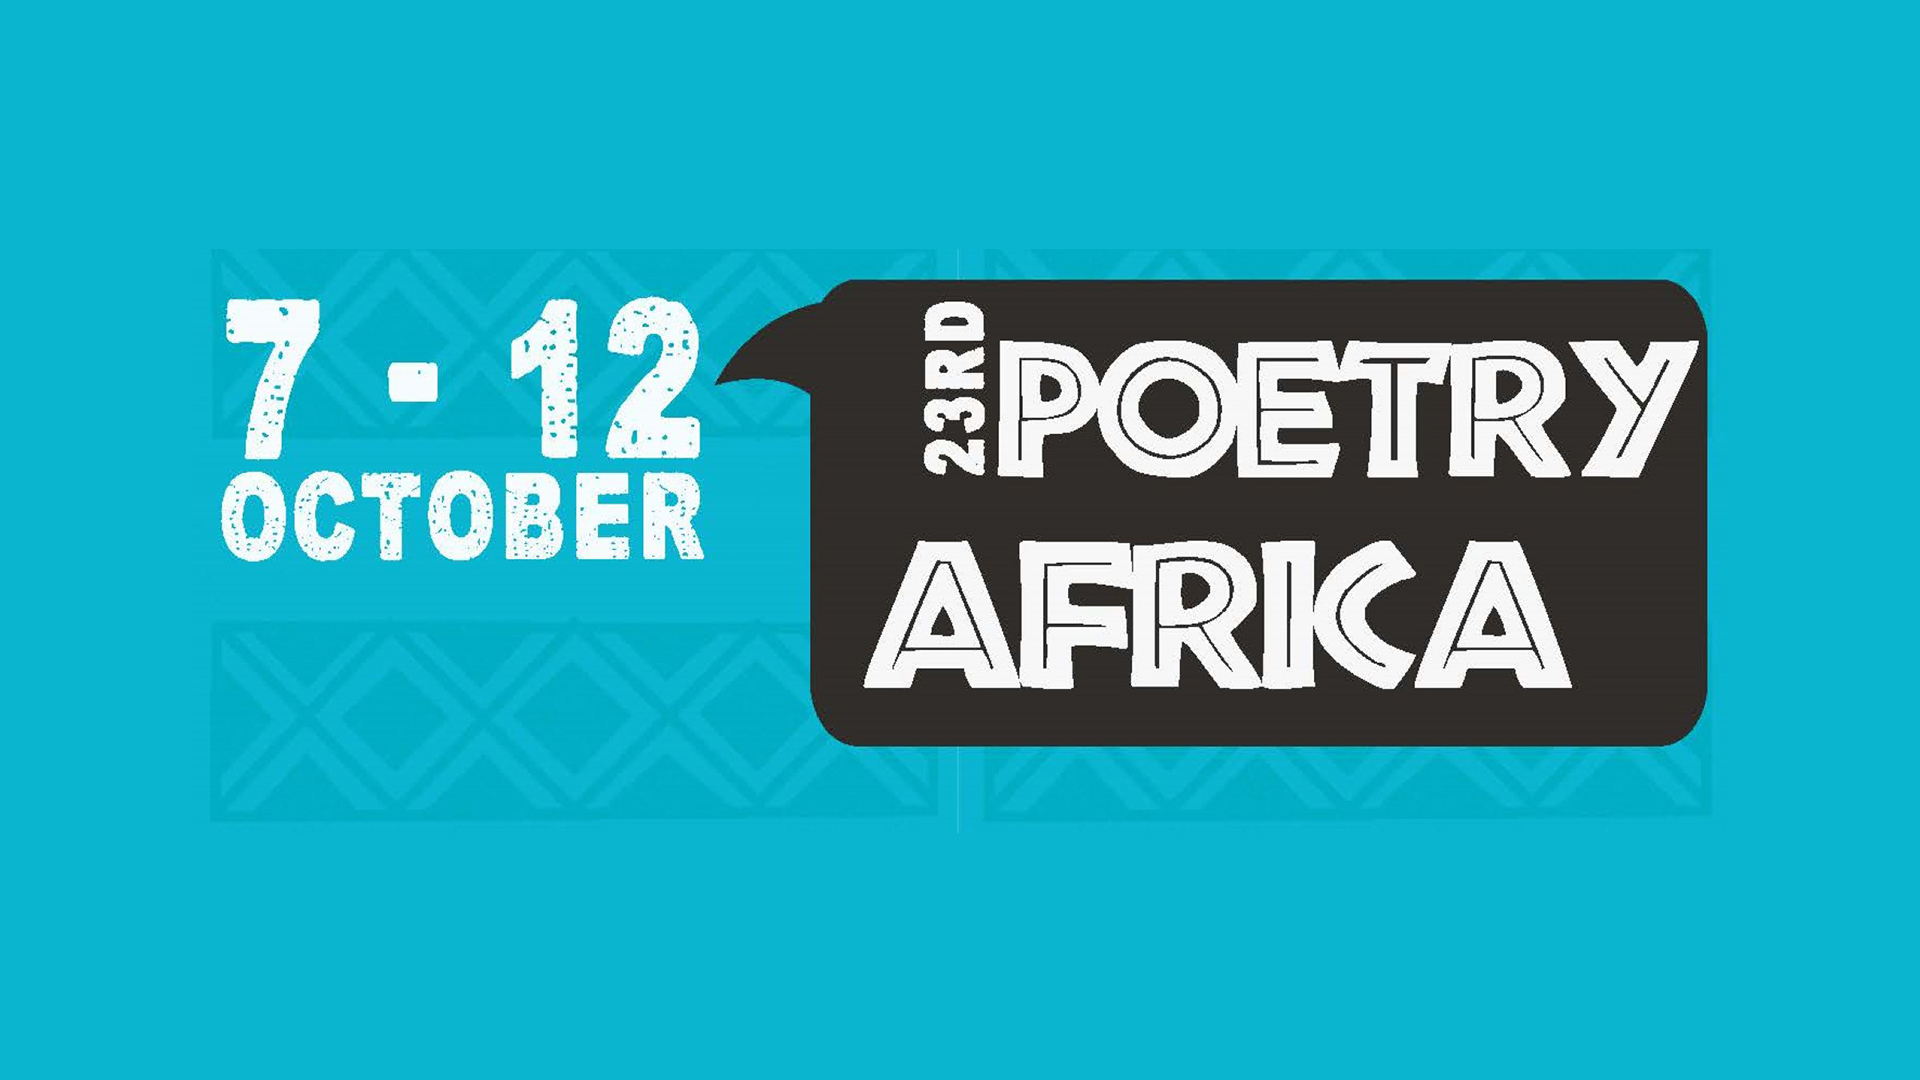 The 23rd edition of the Poetry Africa festival